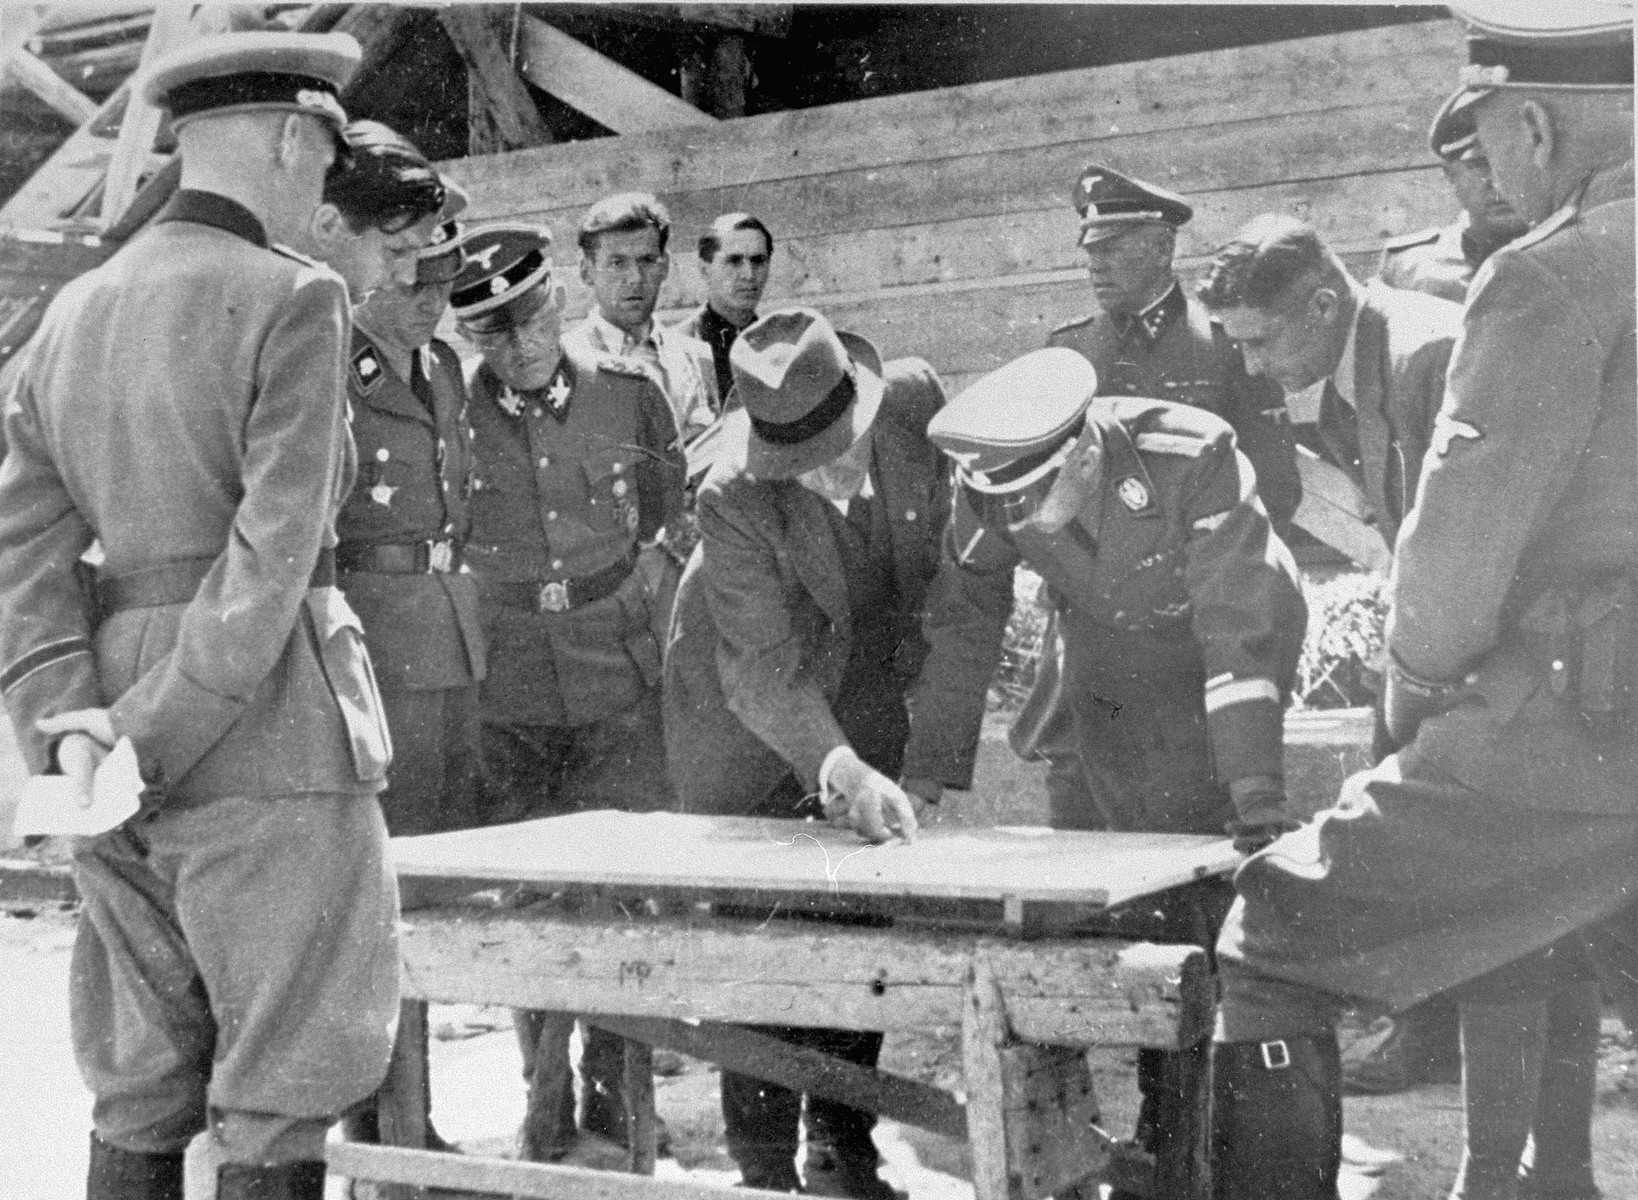 Reichsfuehrer SS Heinrich Himmler examines a building plan with Max Faust (wearing the fedora) during an inspection tour of the Monowitz-Buna building site.  Faust, who was an IG Farben engineer, was the head of building operations at Monowitz-Buna.  Individuals pictured third and fourth from the left have been identified as SS-Obersturmbannfuehrer Rudolf Hoess (Lagerkommandant, KL-Auschwitz), and SS-Obergruppenfuehrer and General der Polizei Ernst Heinrich Schmauser (Hoeherer SS- and Polizeifuehrer Suedost).